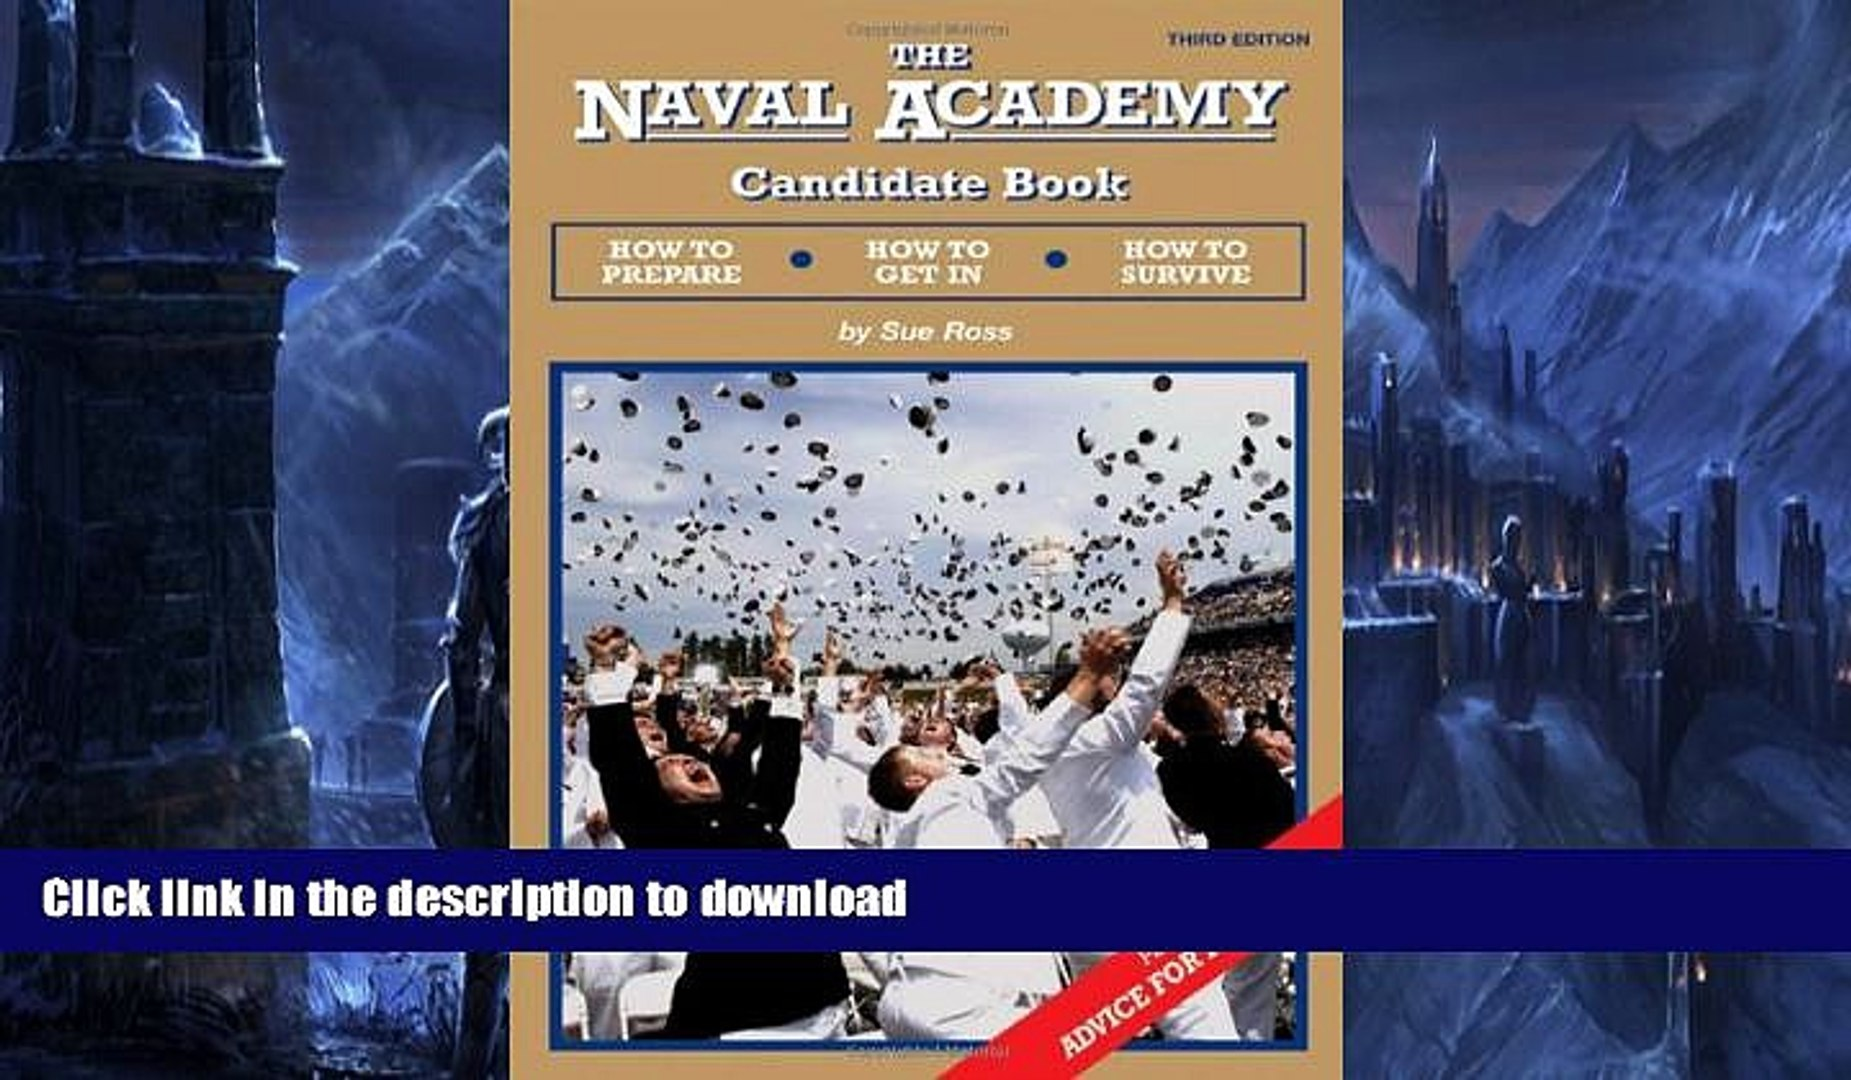 READ The Naval Academy Candidate Book:  How to Prepare, How to Get In, How to Survive